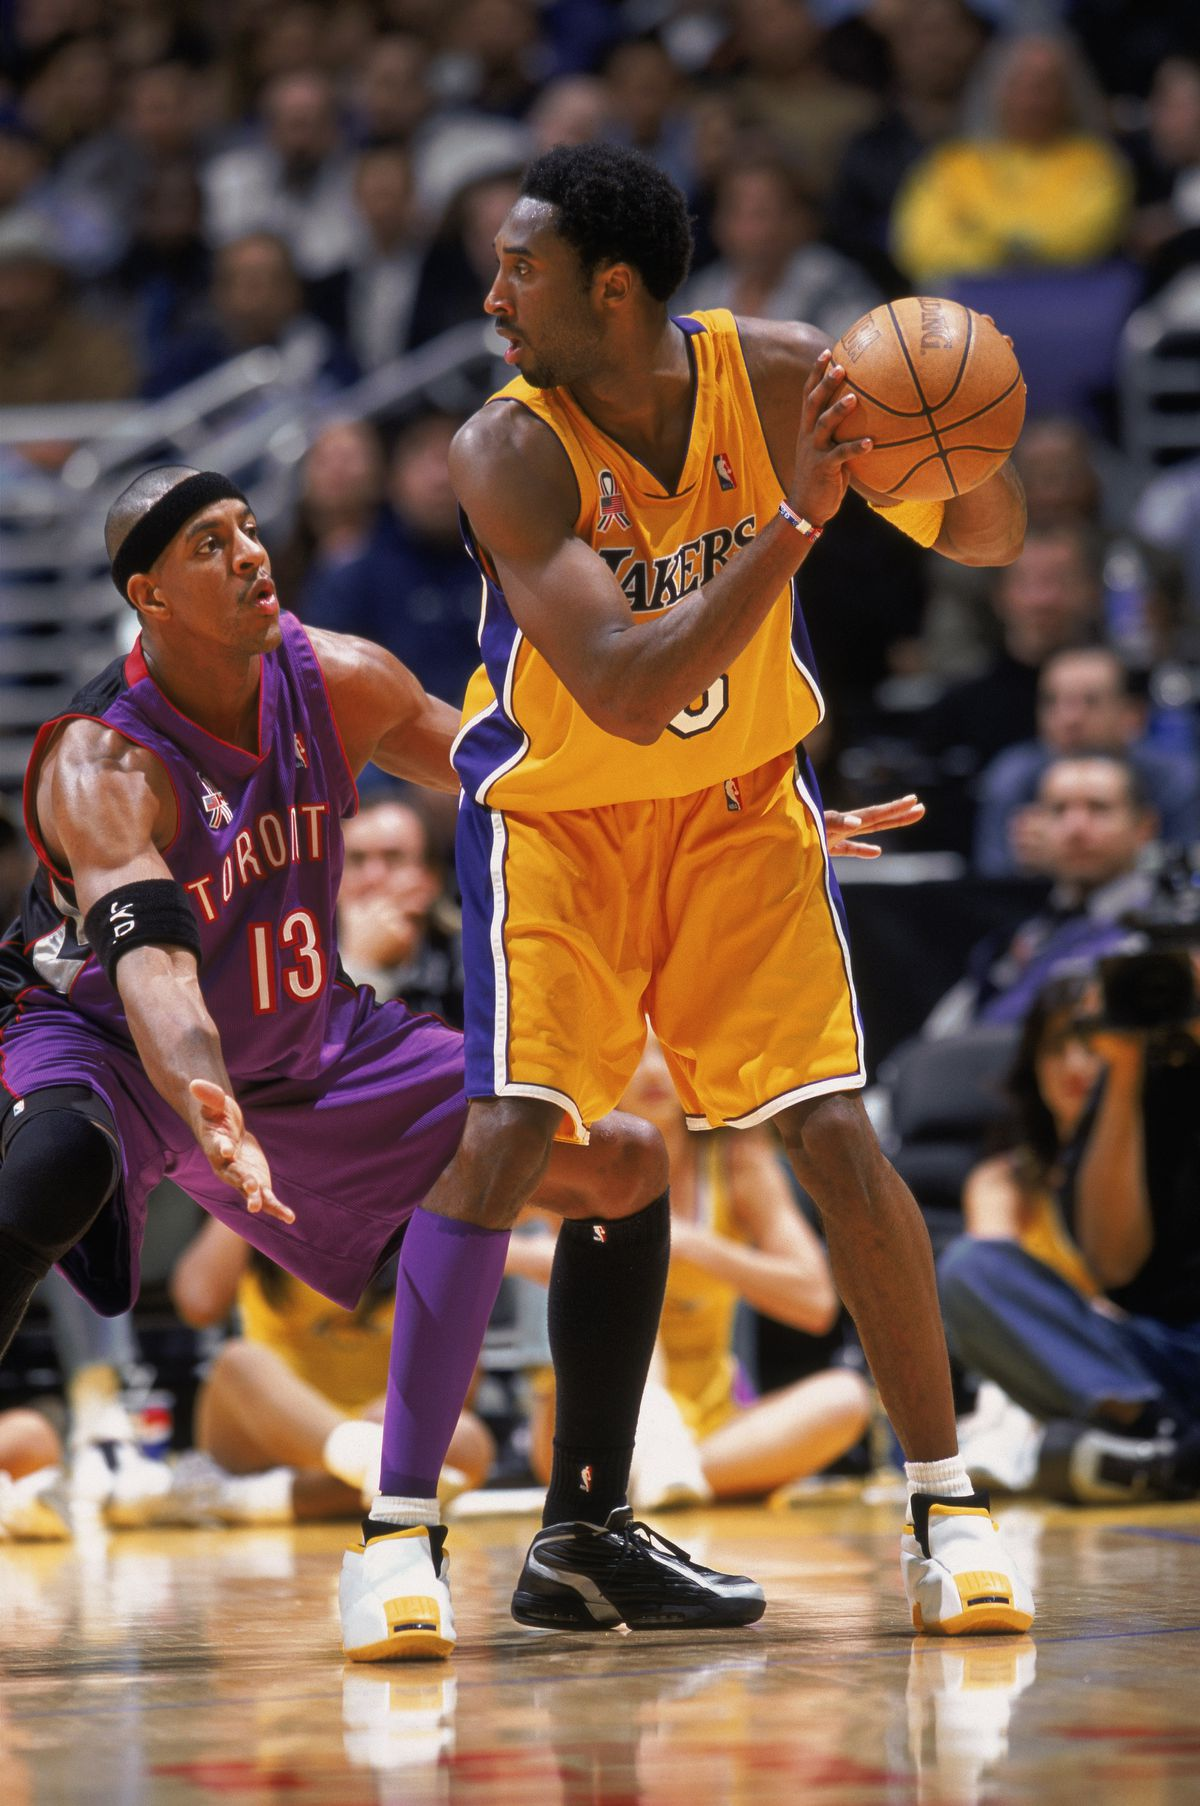 Kobe Bryant #8 of the Los Angeles Lakers holds the ball.